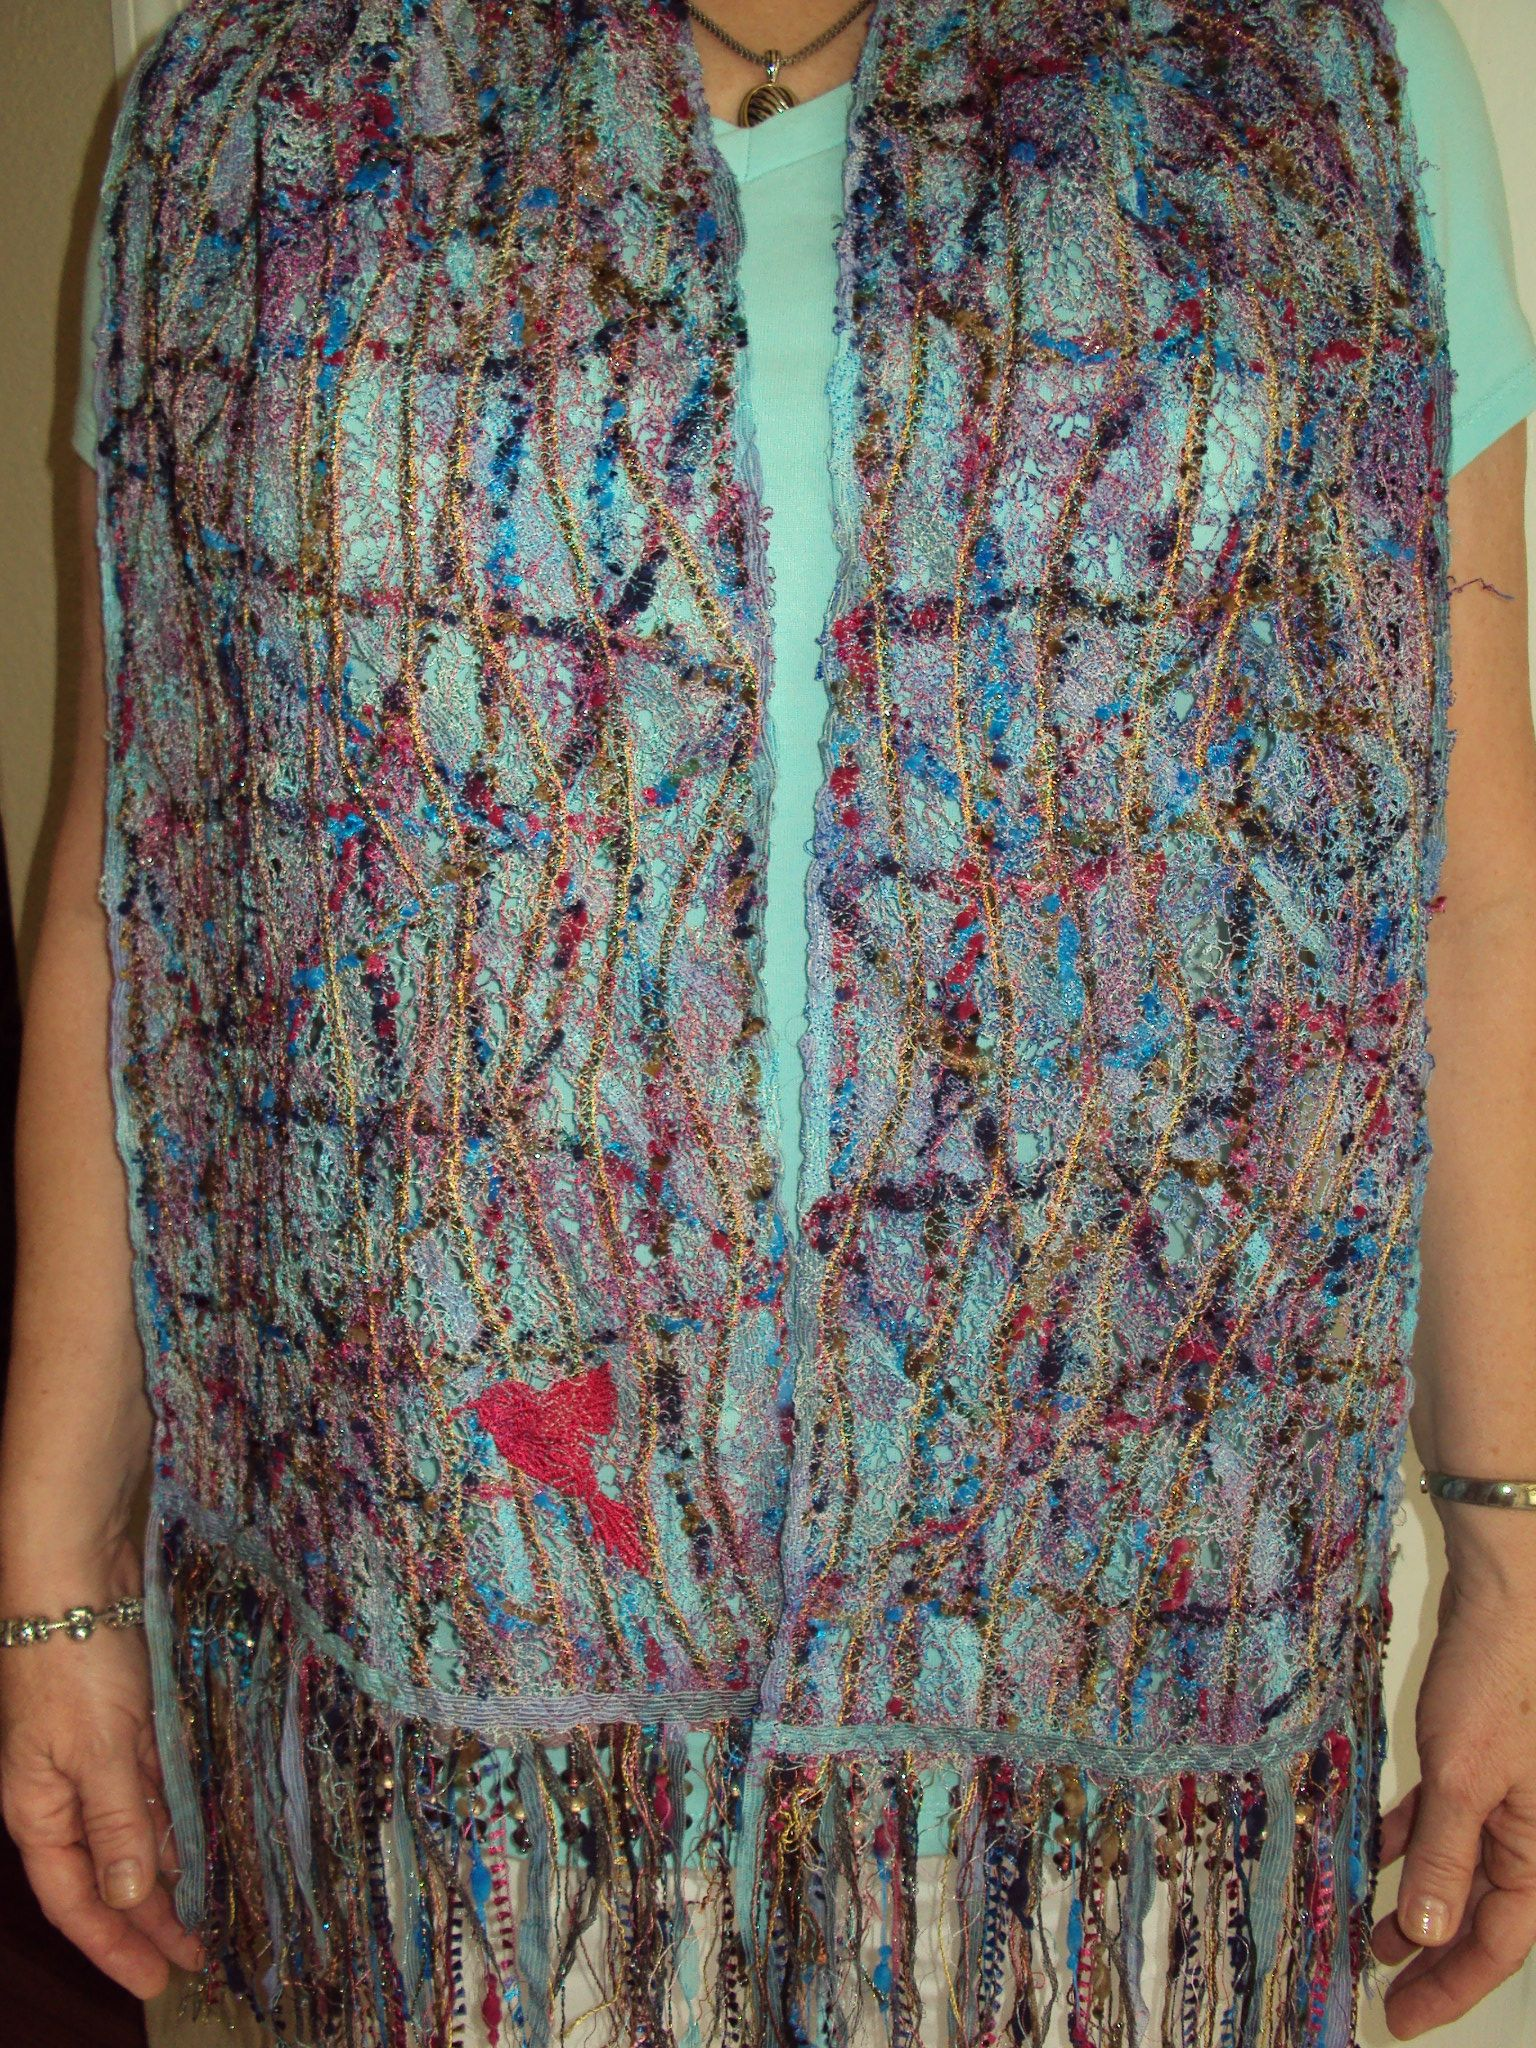 Sewing Machine made scarf with embroidery